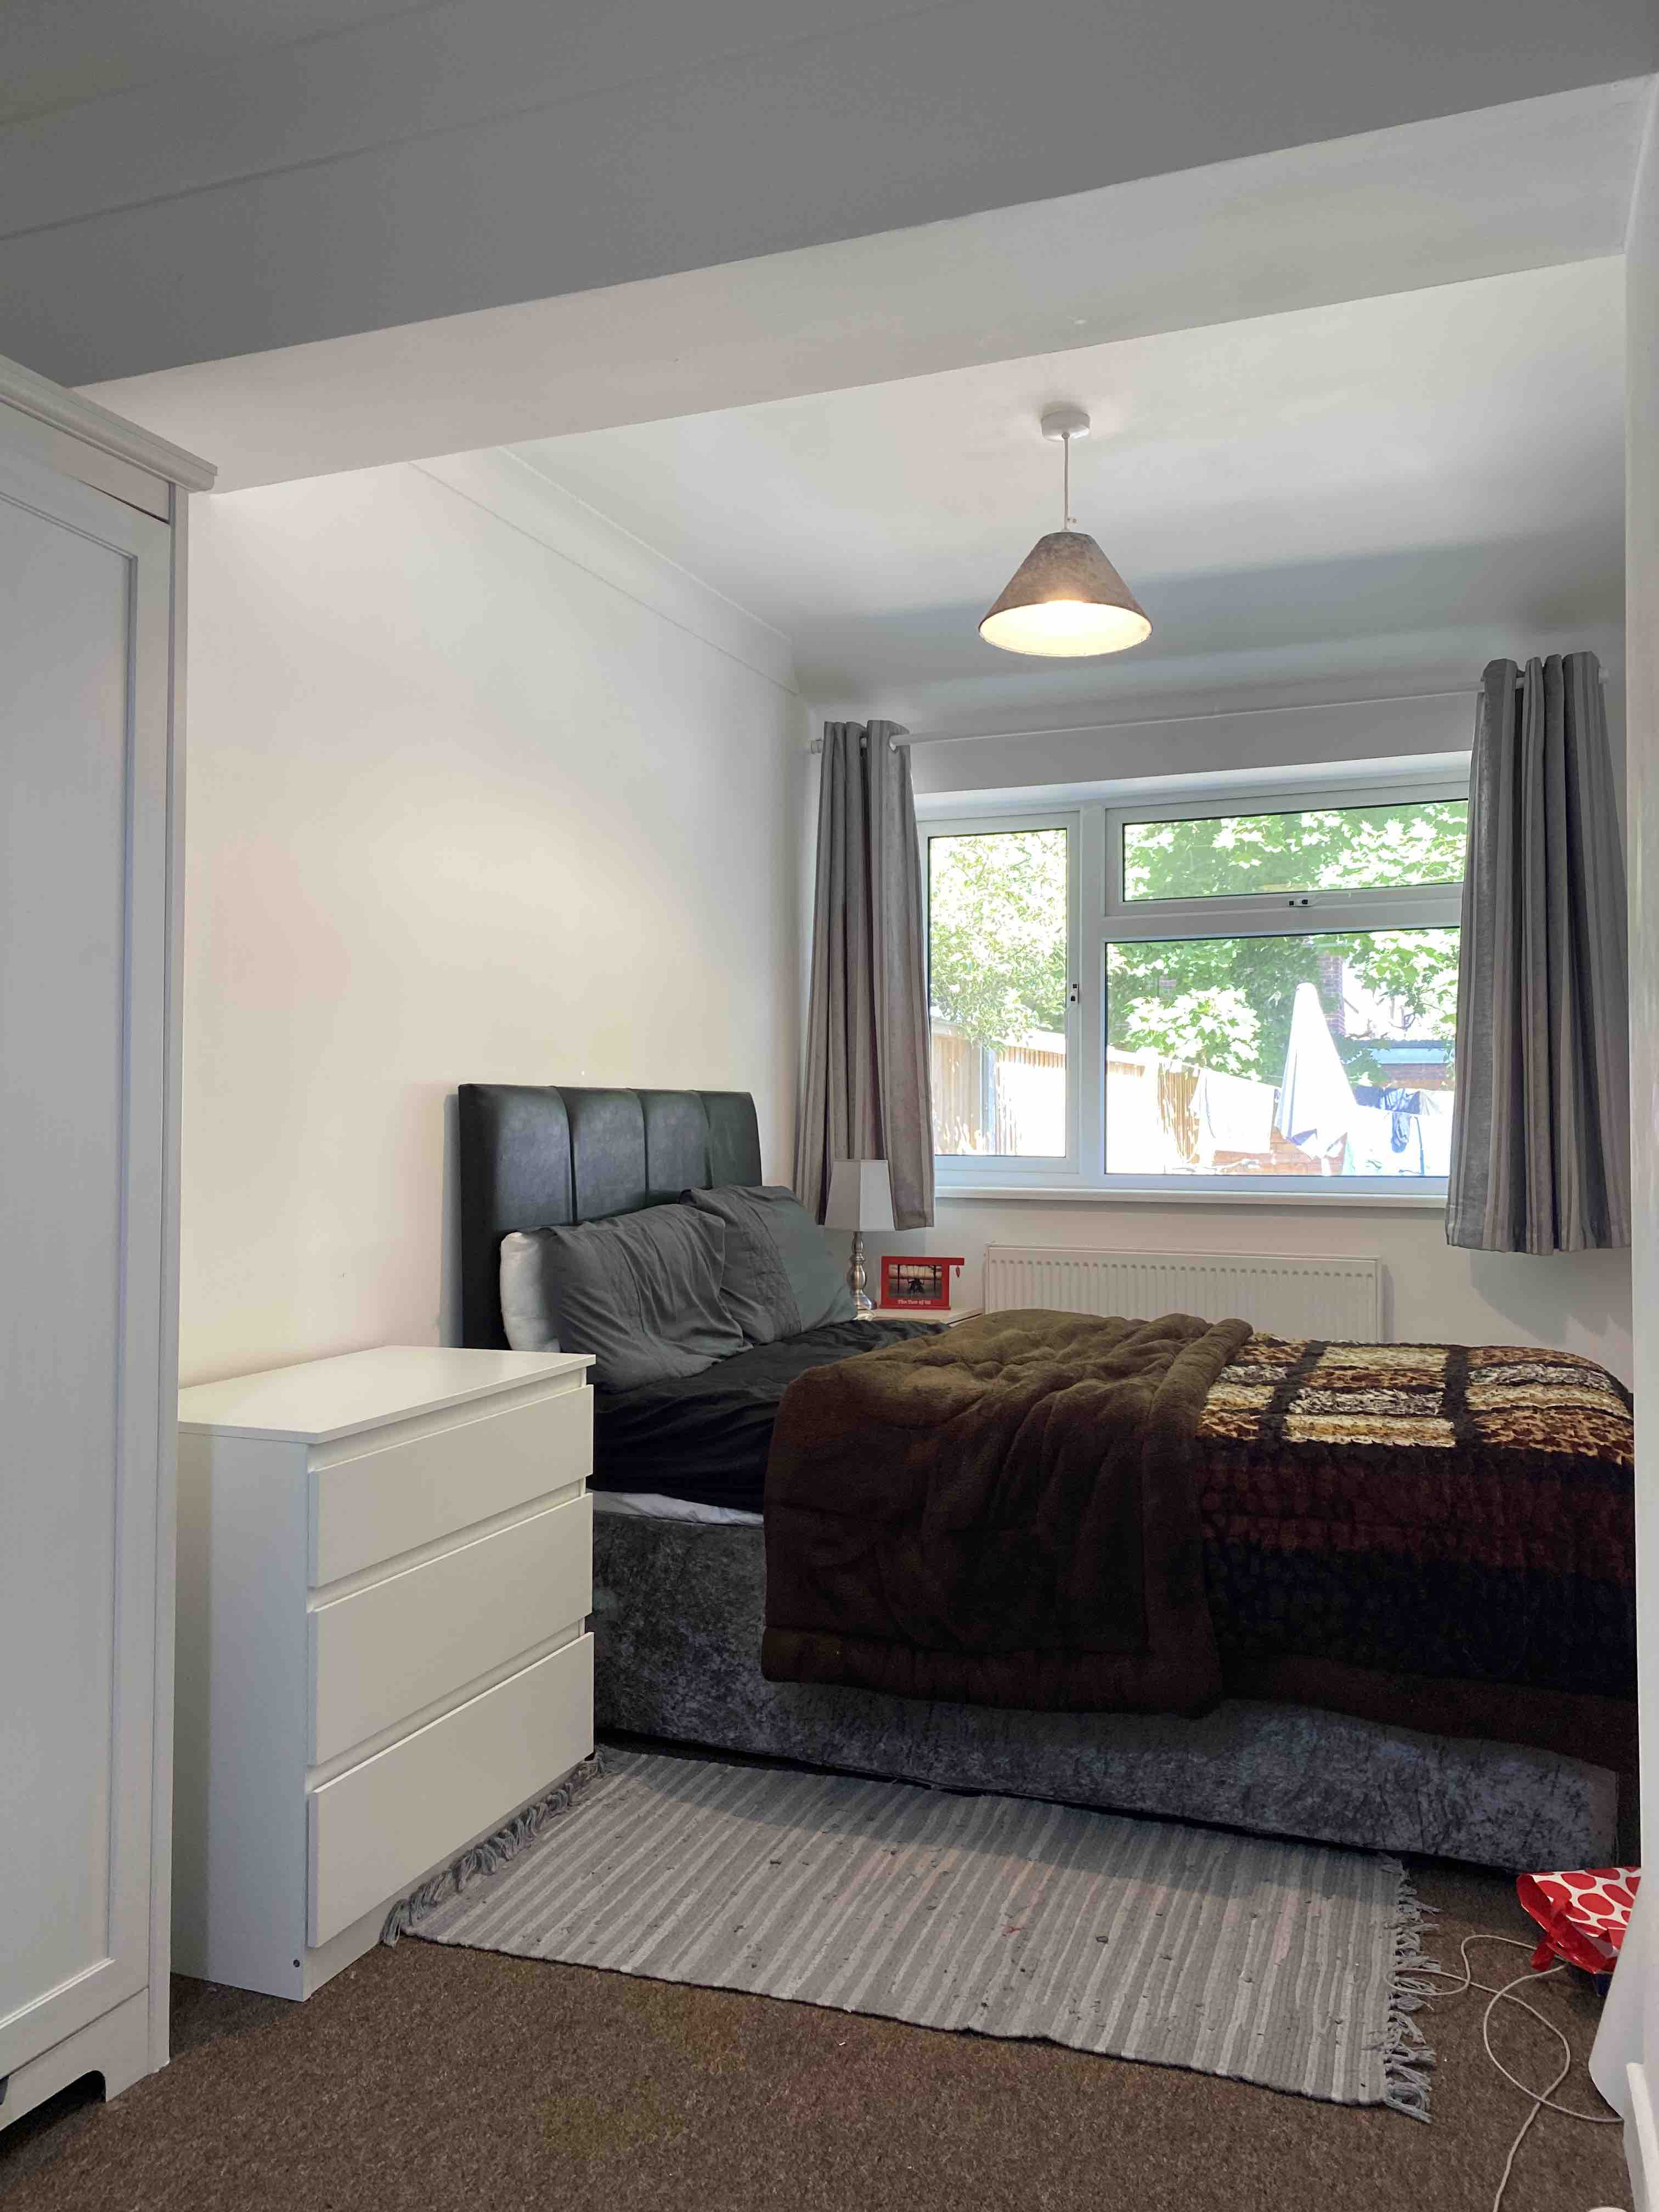 1 room in Eastleigh, Eastleigh, SO504NQ RoomsLocal image